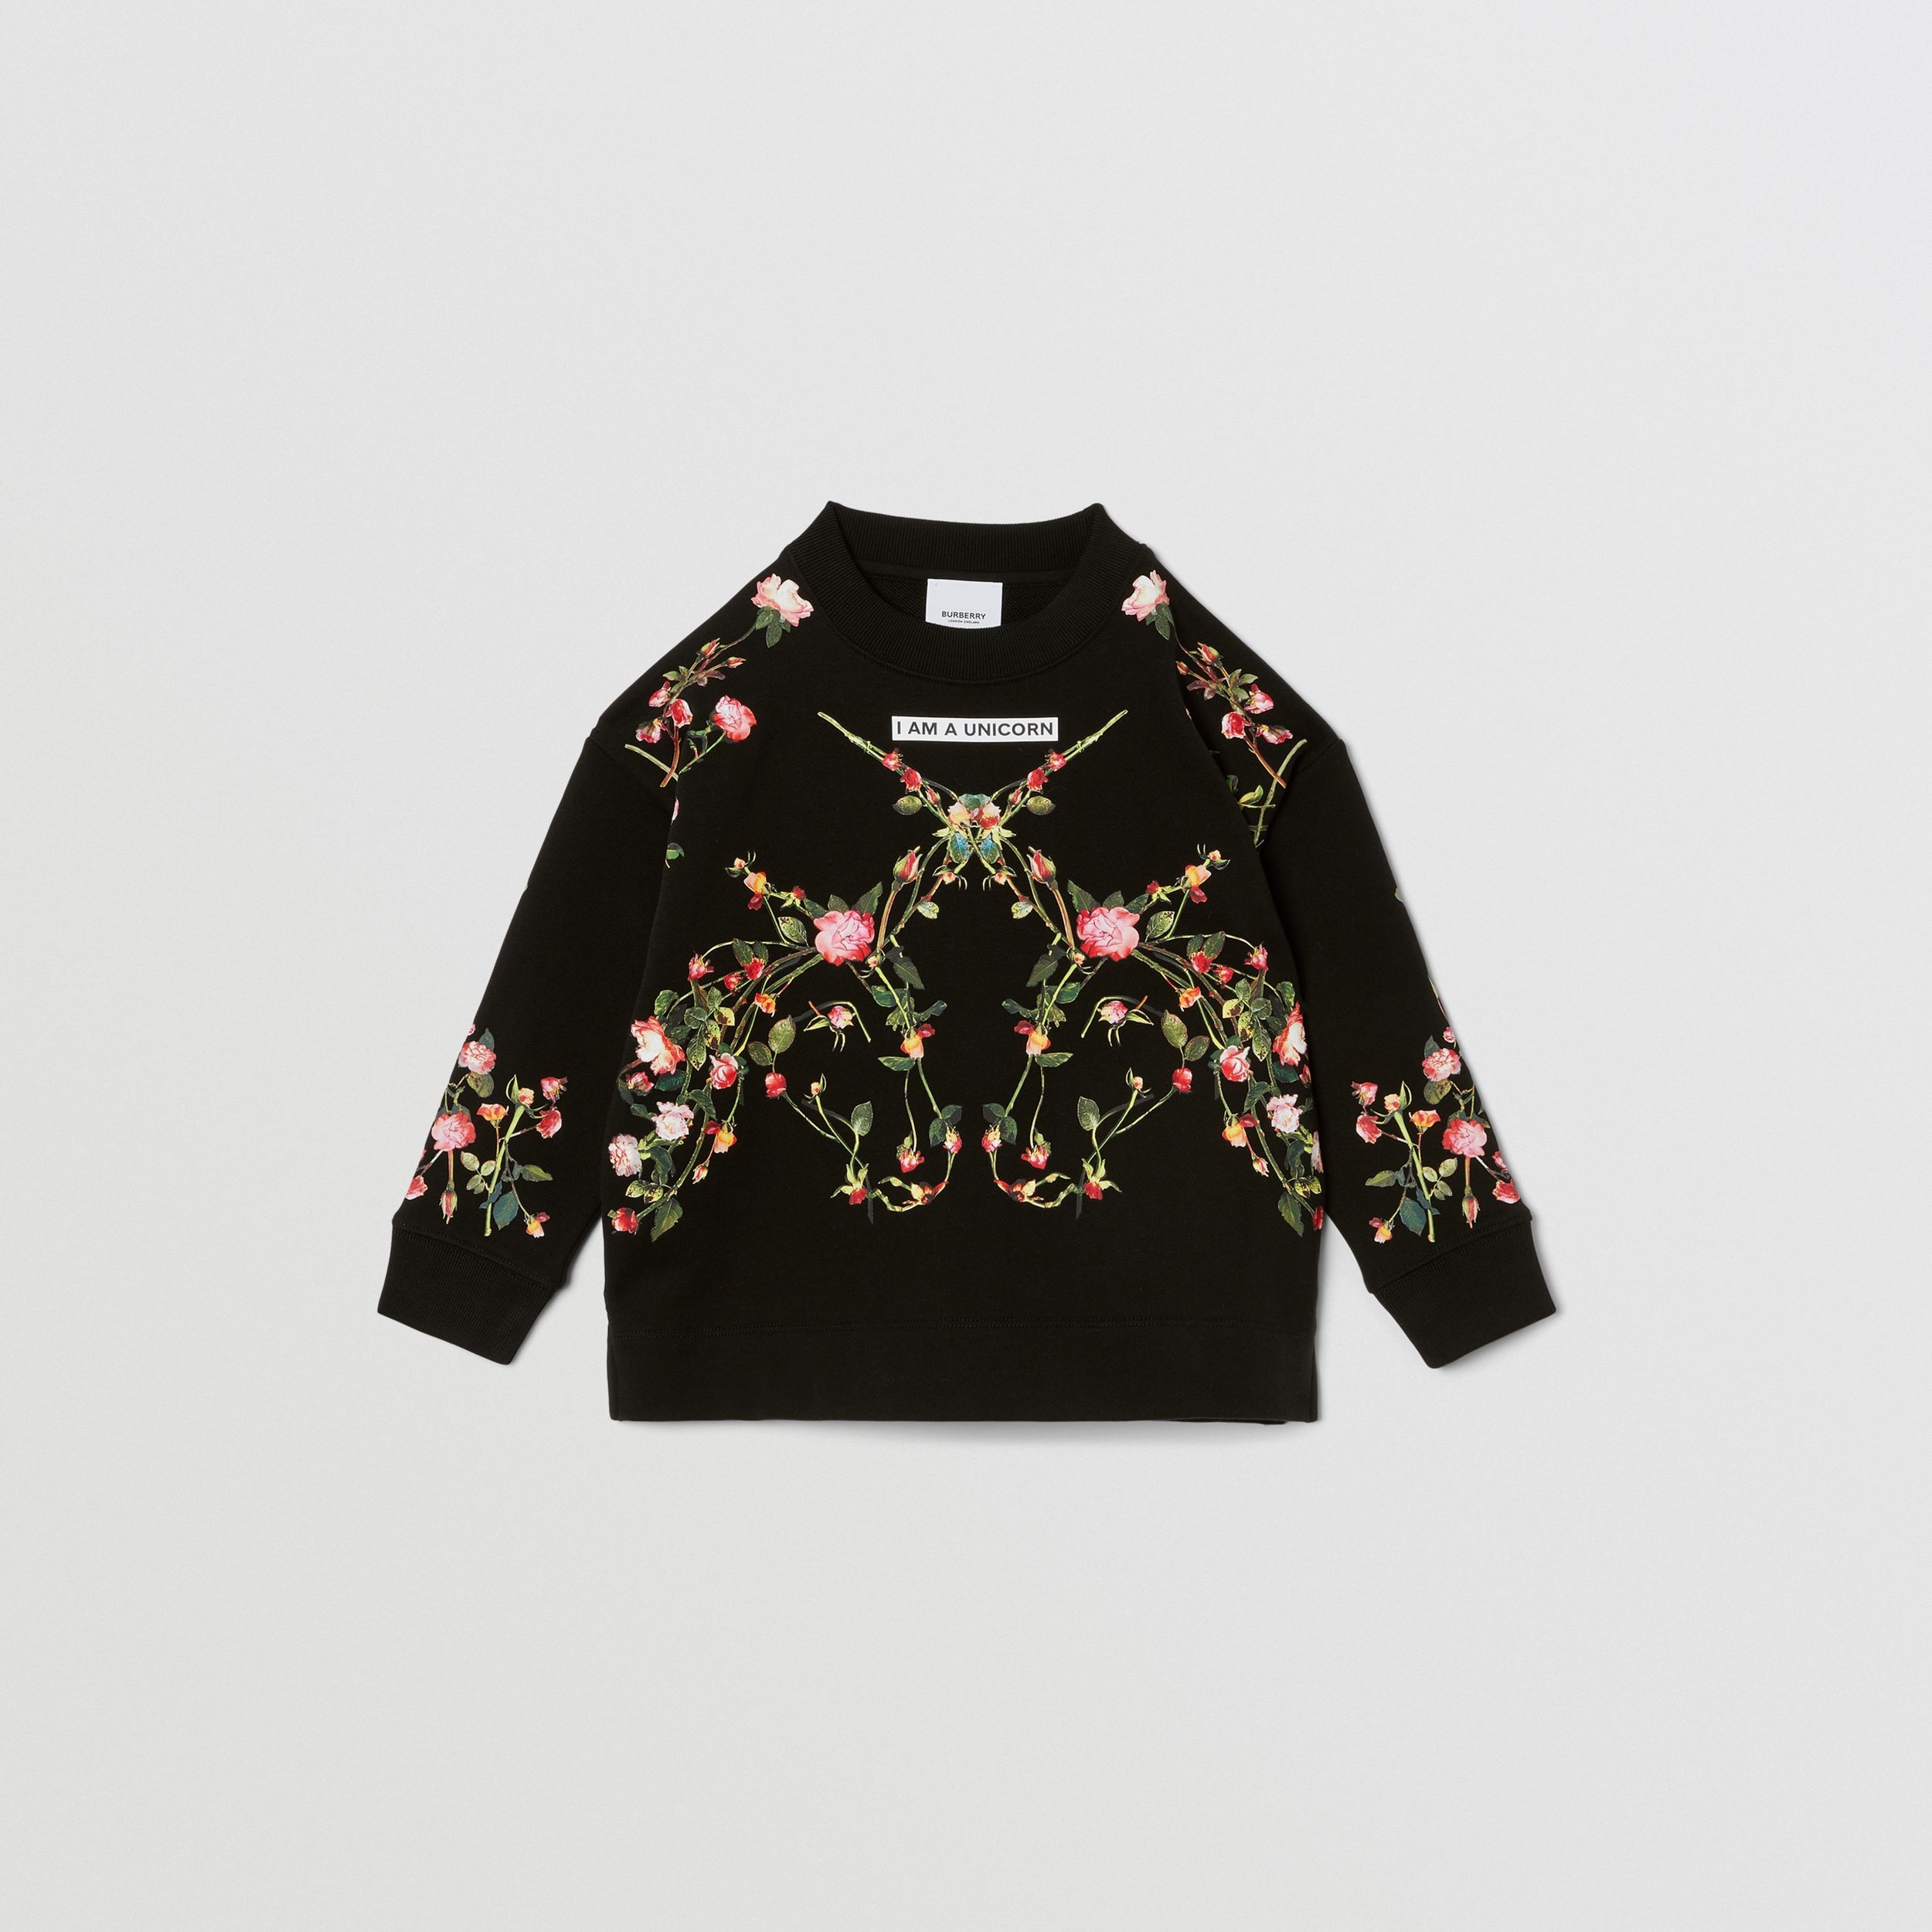 Montage Print Cotton Sweatshirt in Black | Burberry - 1